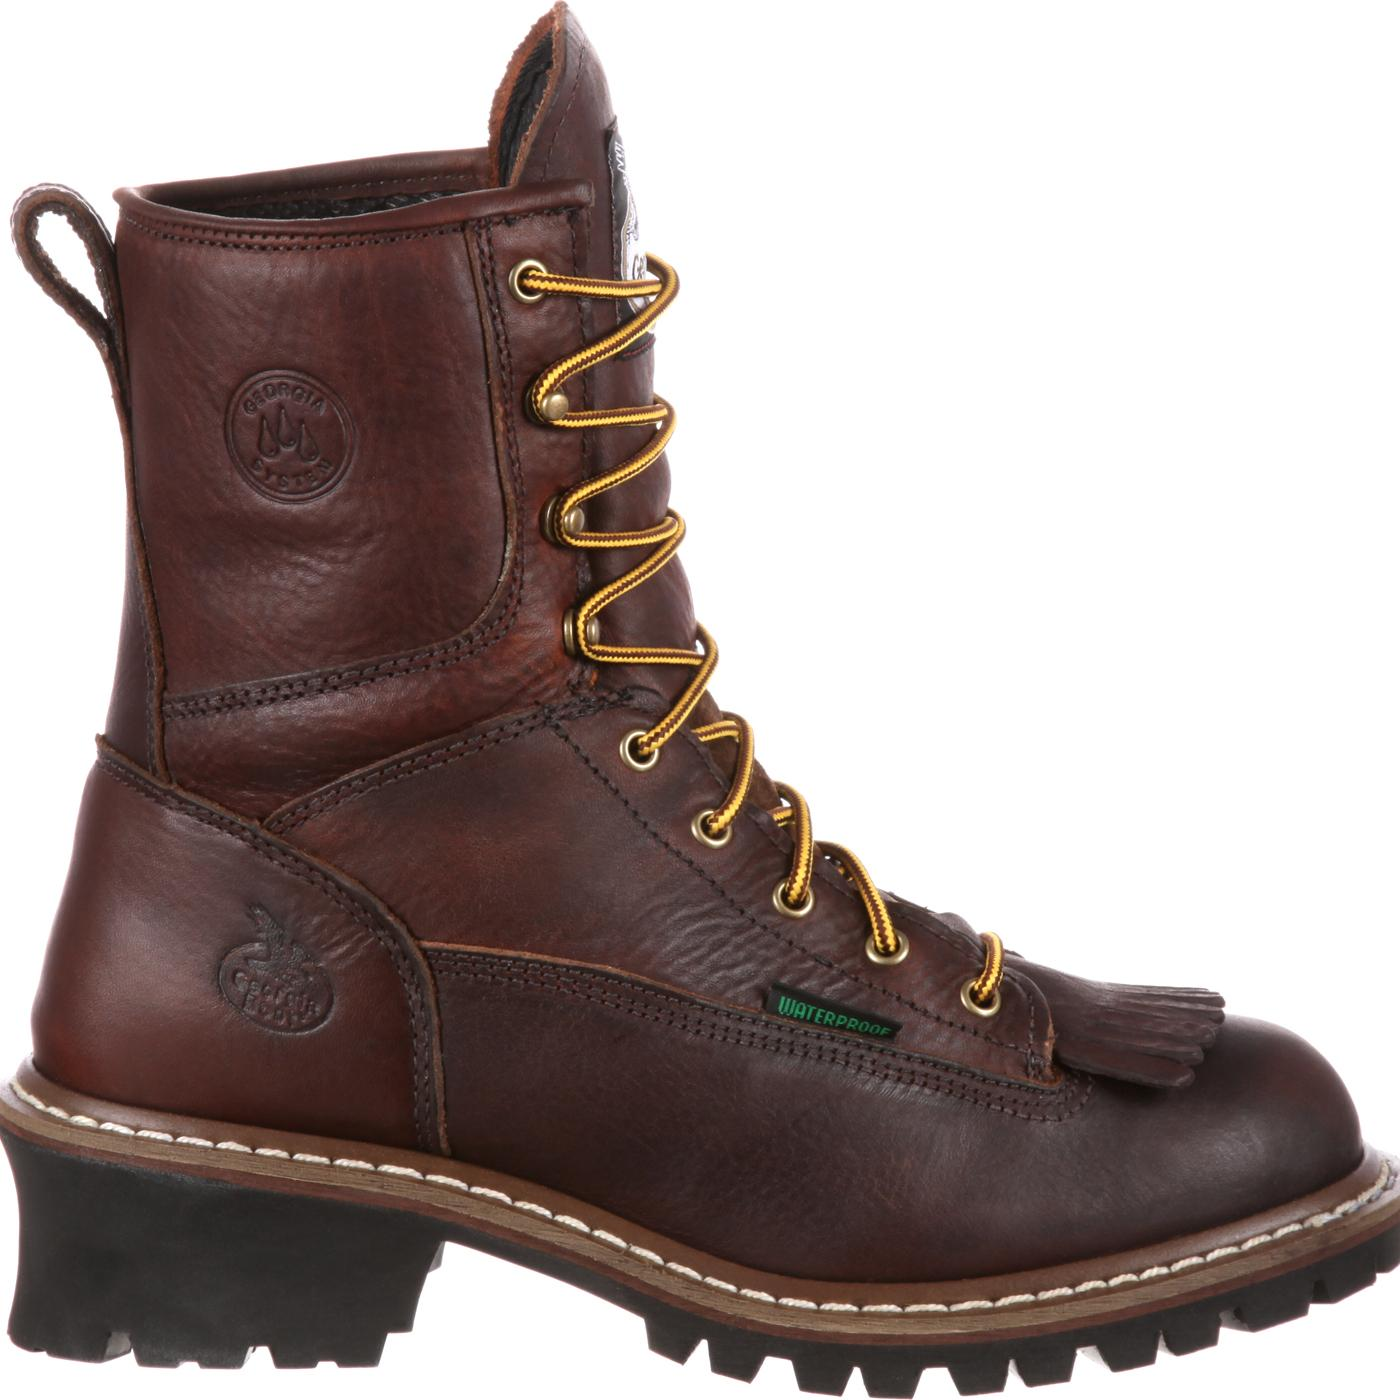 Georgia Boot Waterproof Logger Work Boots Style G7113